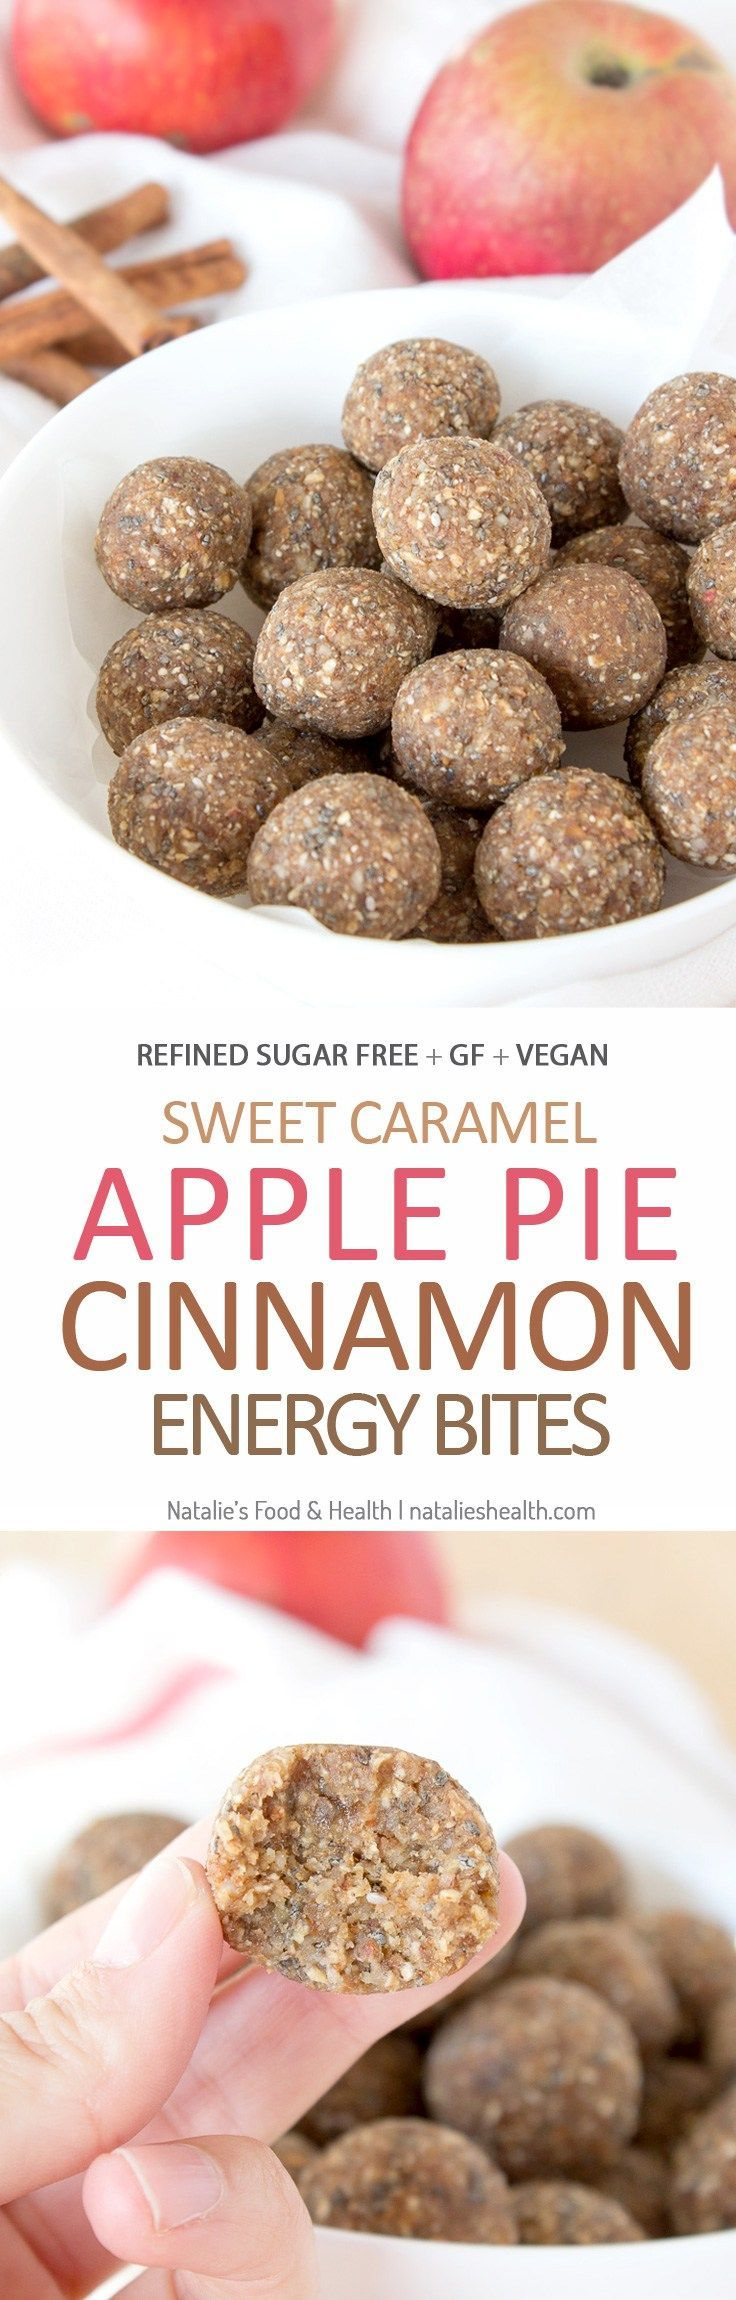 Sweet, cinnamon apple pie energy bites made refined sugar free are true healthy snack. CLICK to read the recipe or PIN for later! #vegan #glutenfree #healthy #raw